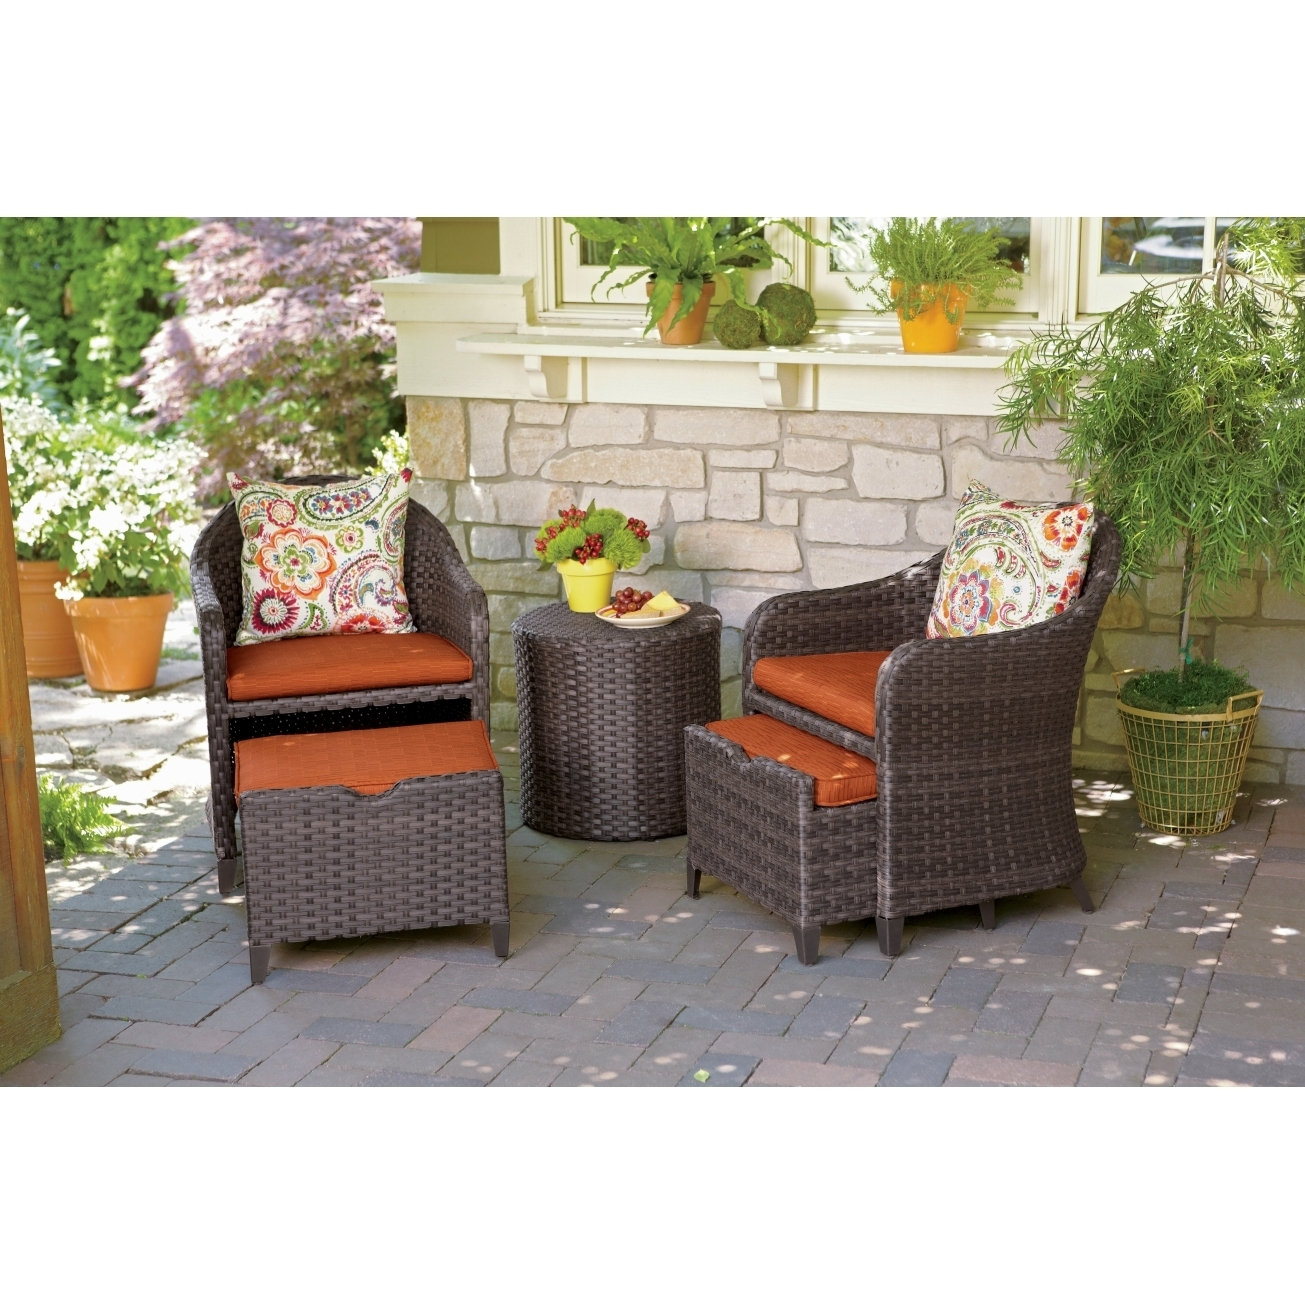 Hanover Patio Conversation Sets Strathallure2pc 64 1000 Random 2 With Well Known Patio Conversation Sets With Ottoman (View 12 of 20)